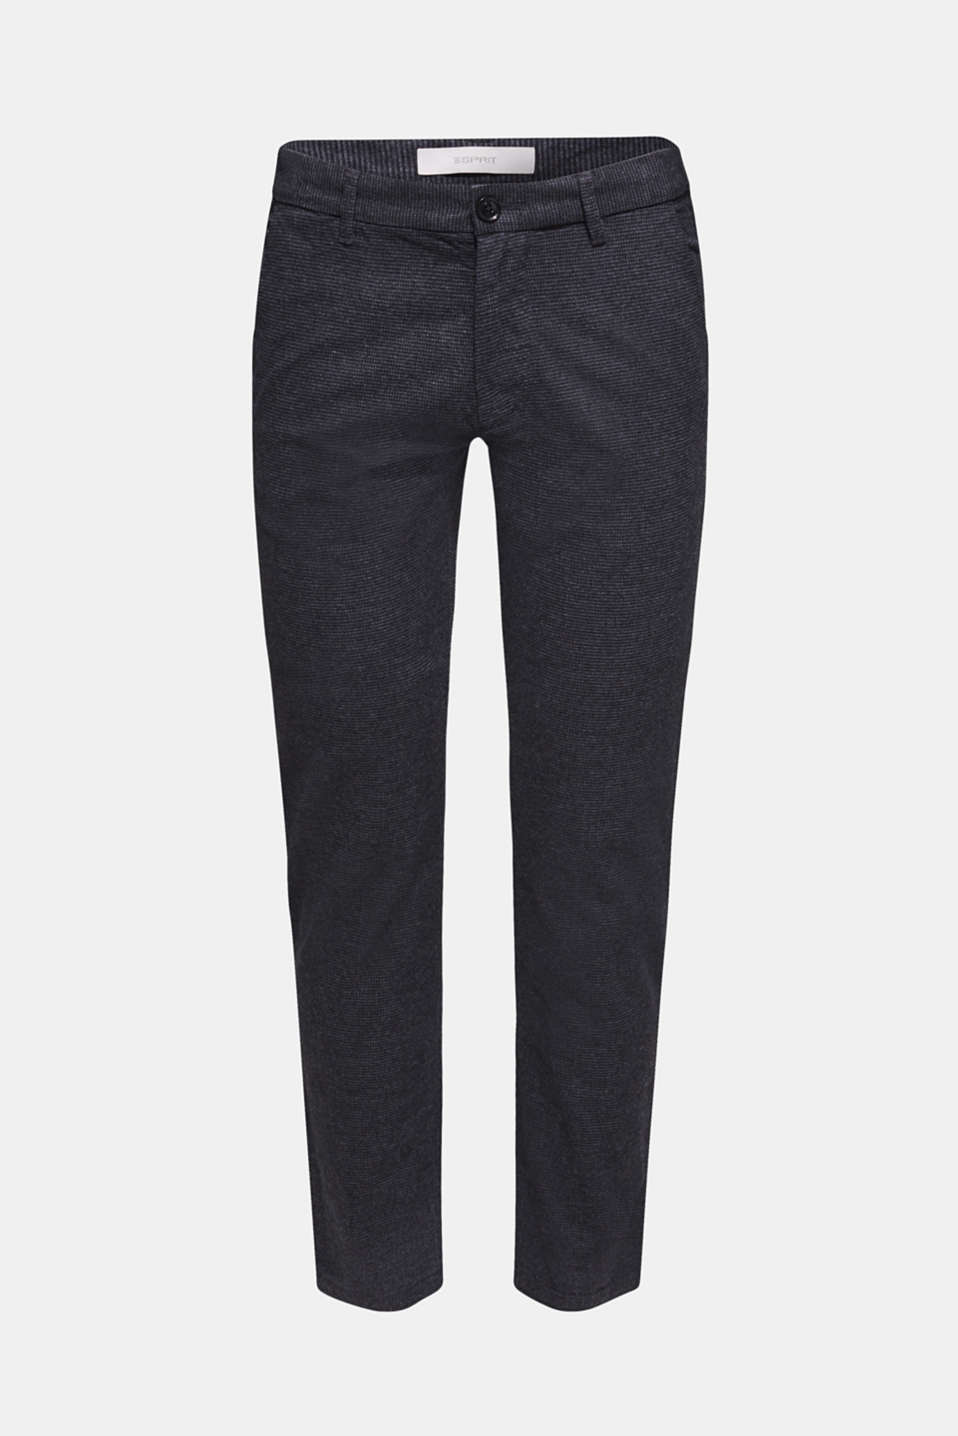 Pants woven Slim fit, NAVY, detail image number 5